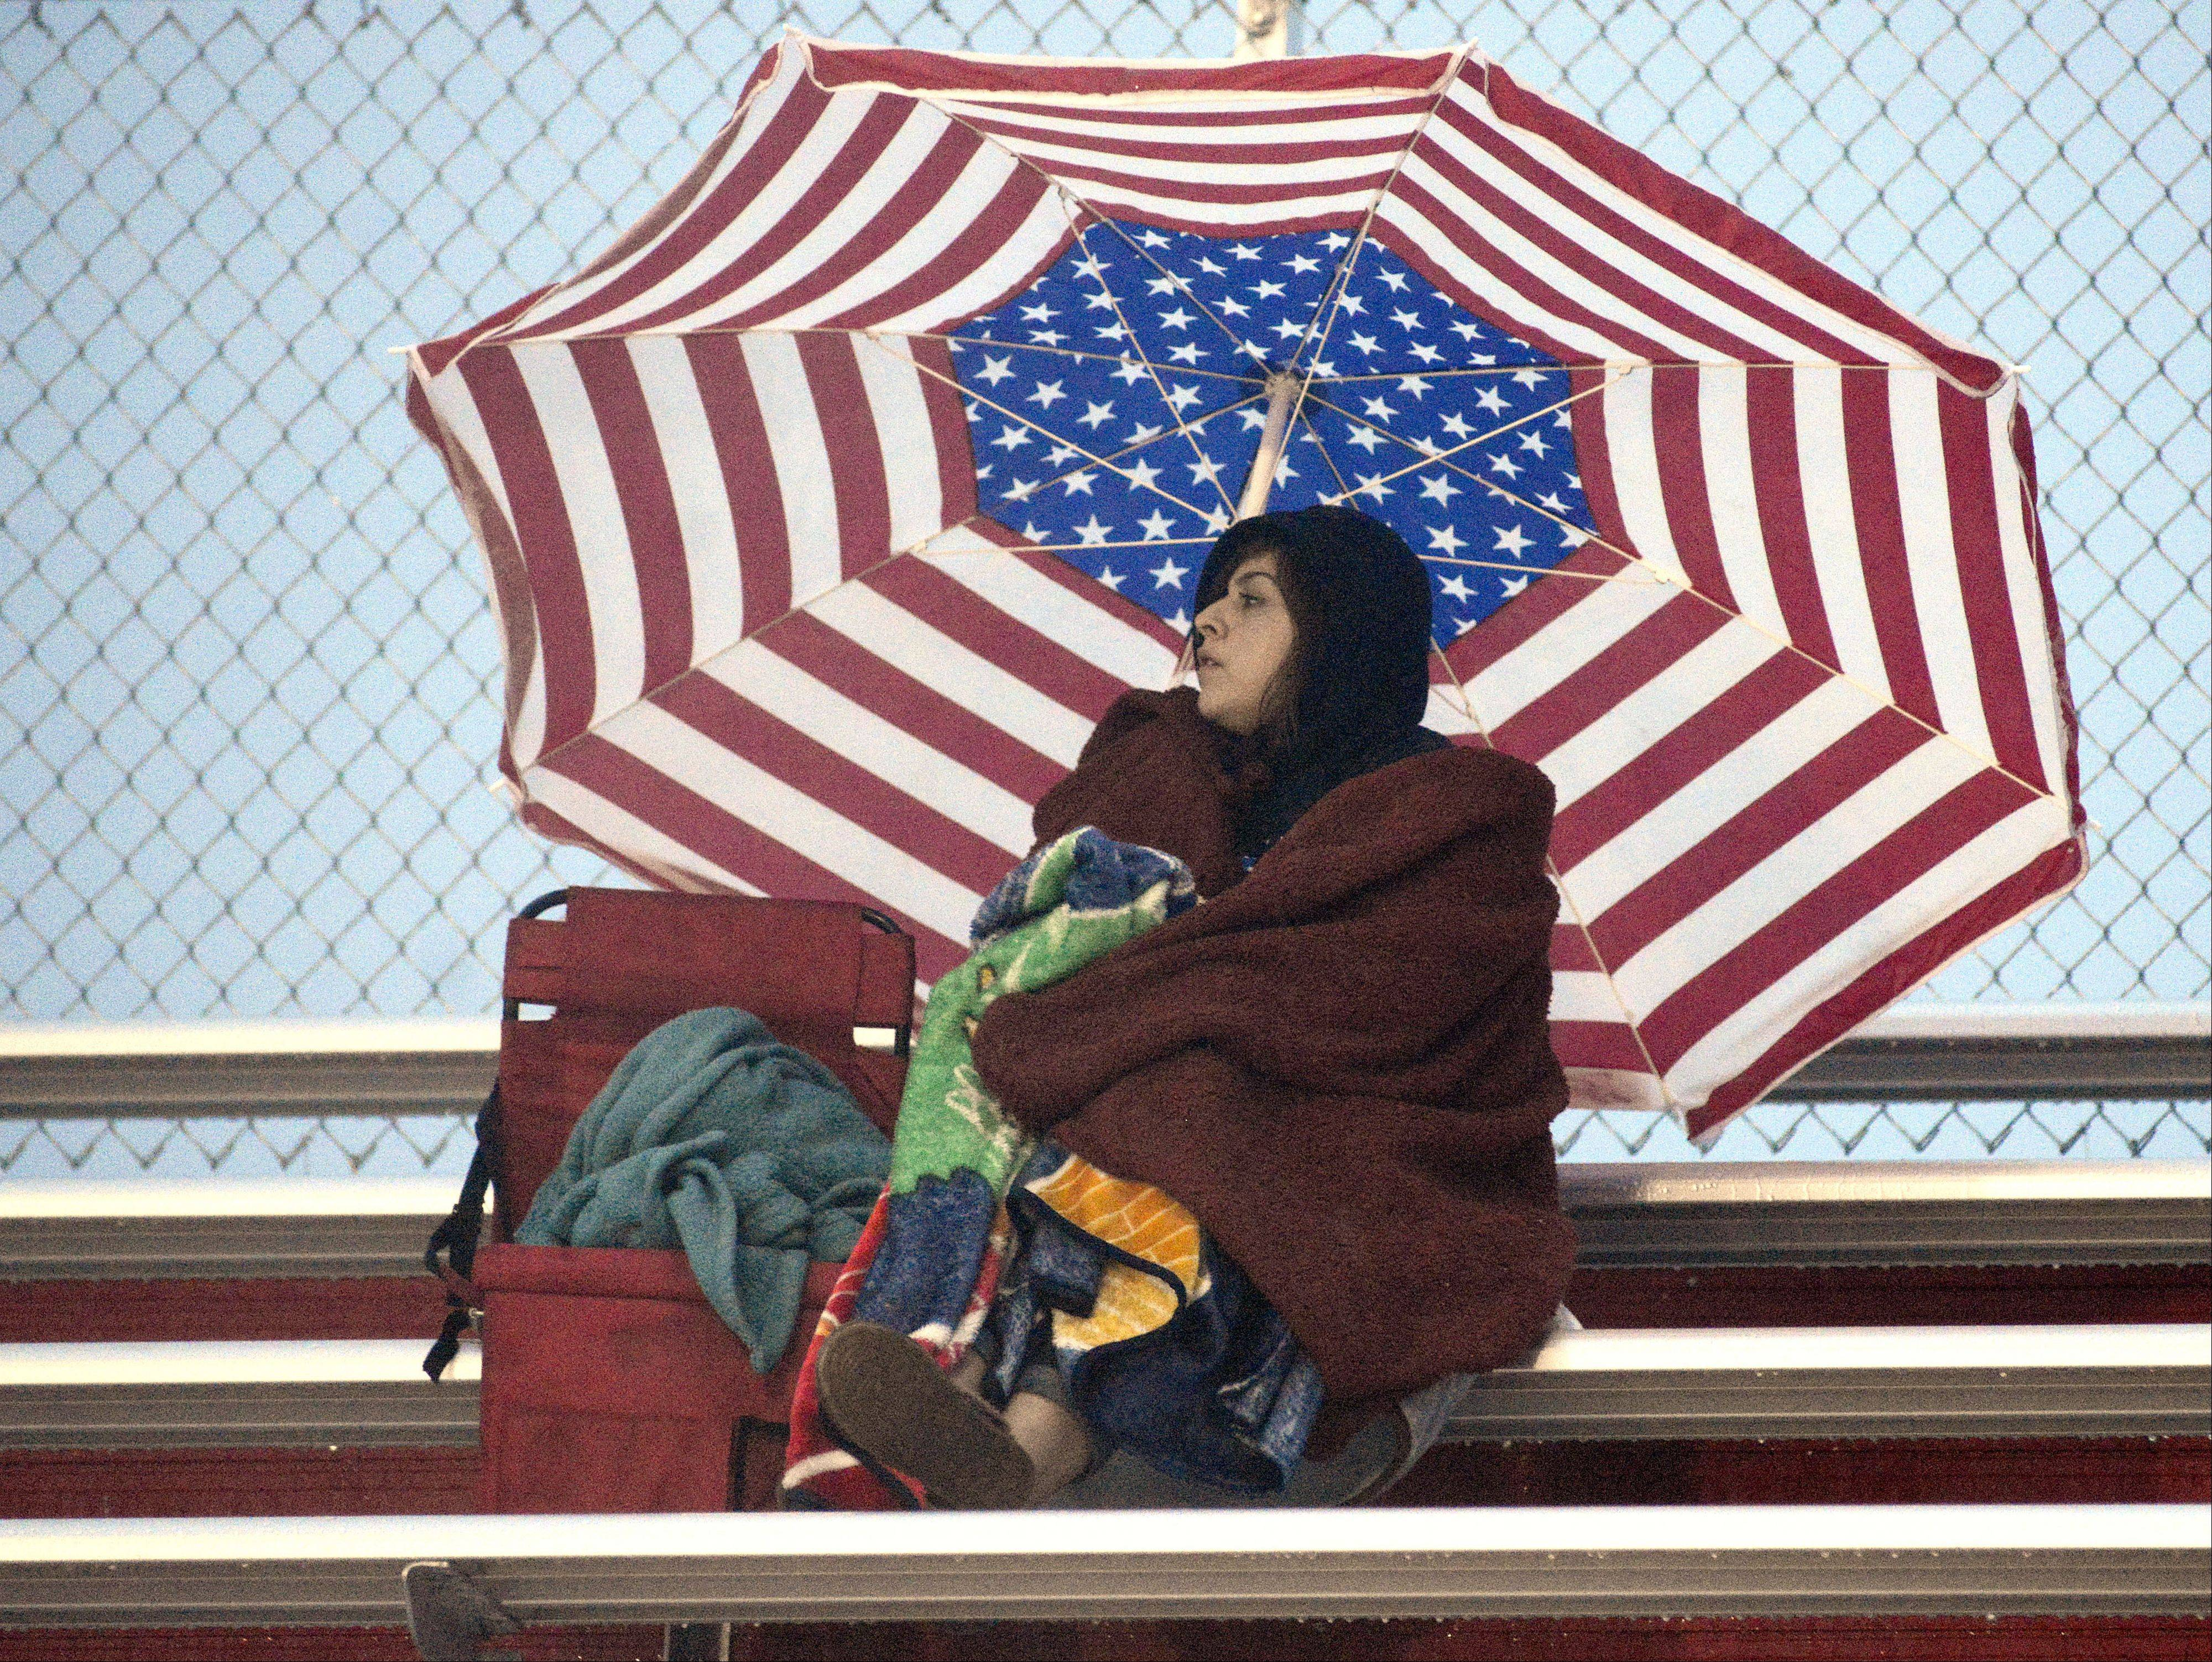 Jasmine Delgado, 17, of Elgin, huddles under a patio umbrella in the stands at Huntley High School during the Larkin vs. Hononegah boys soccer sectional semifinals on Wednesday. Delgado attended the game with Maria Alvarez, whose son, Freddy, plays for Larkin.